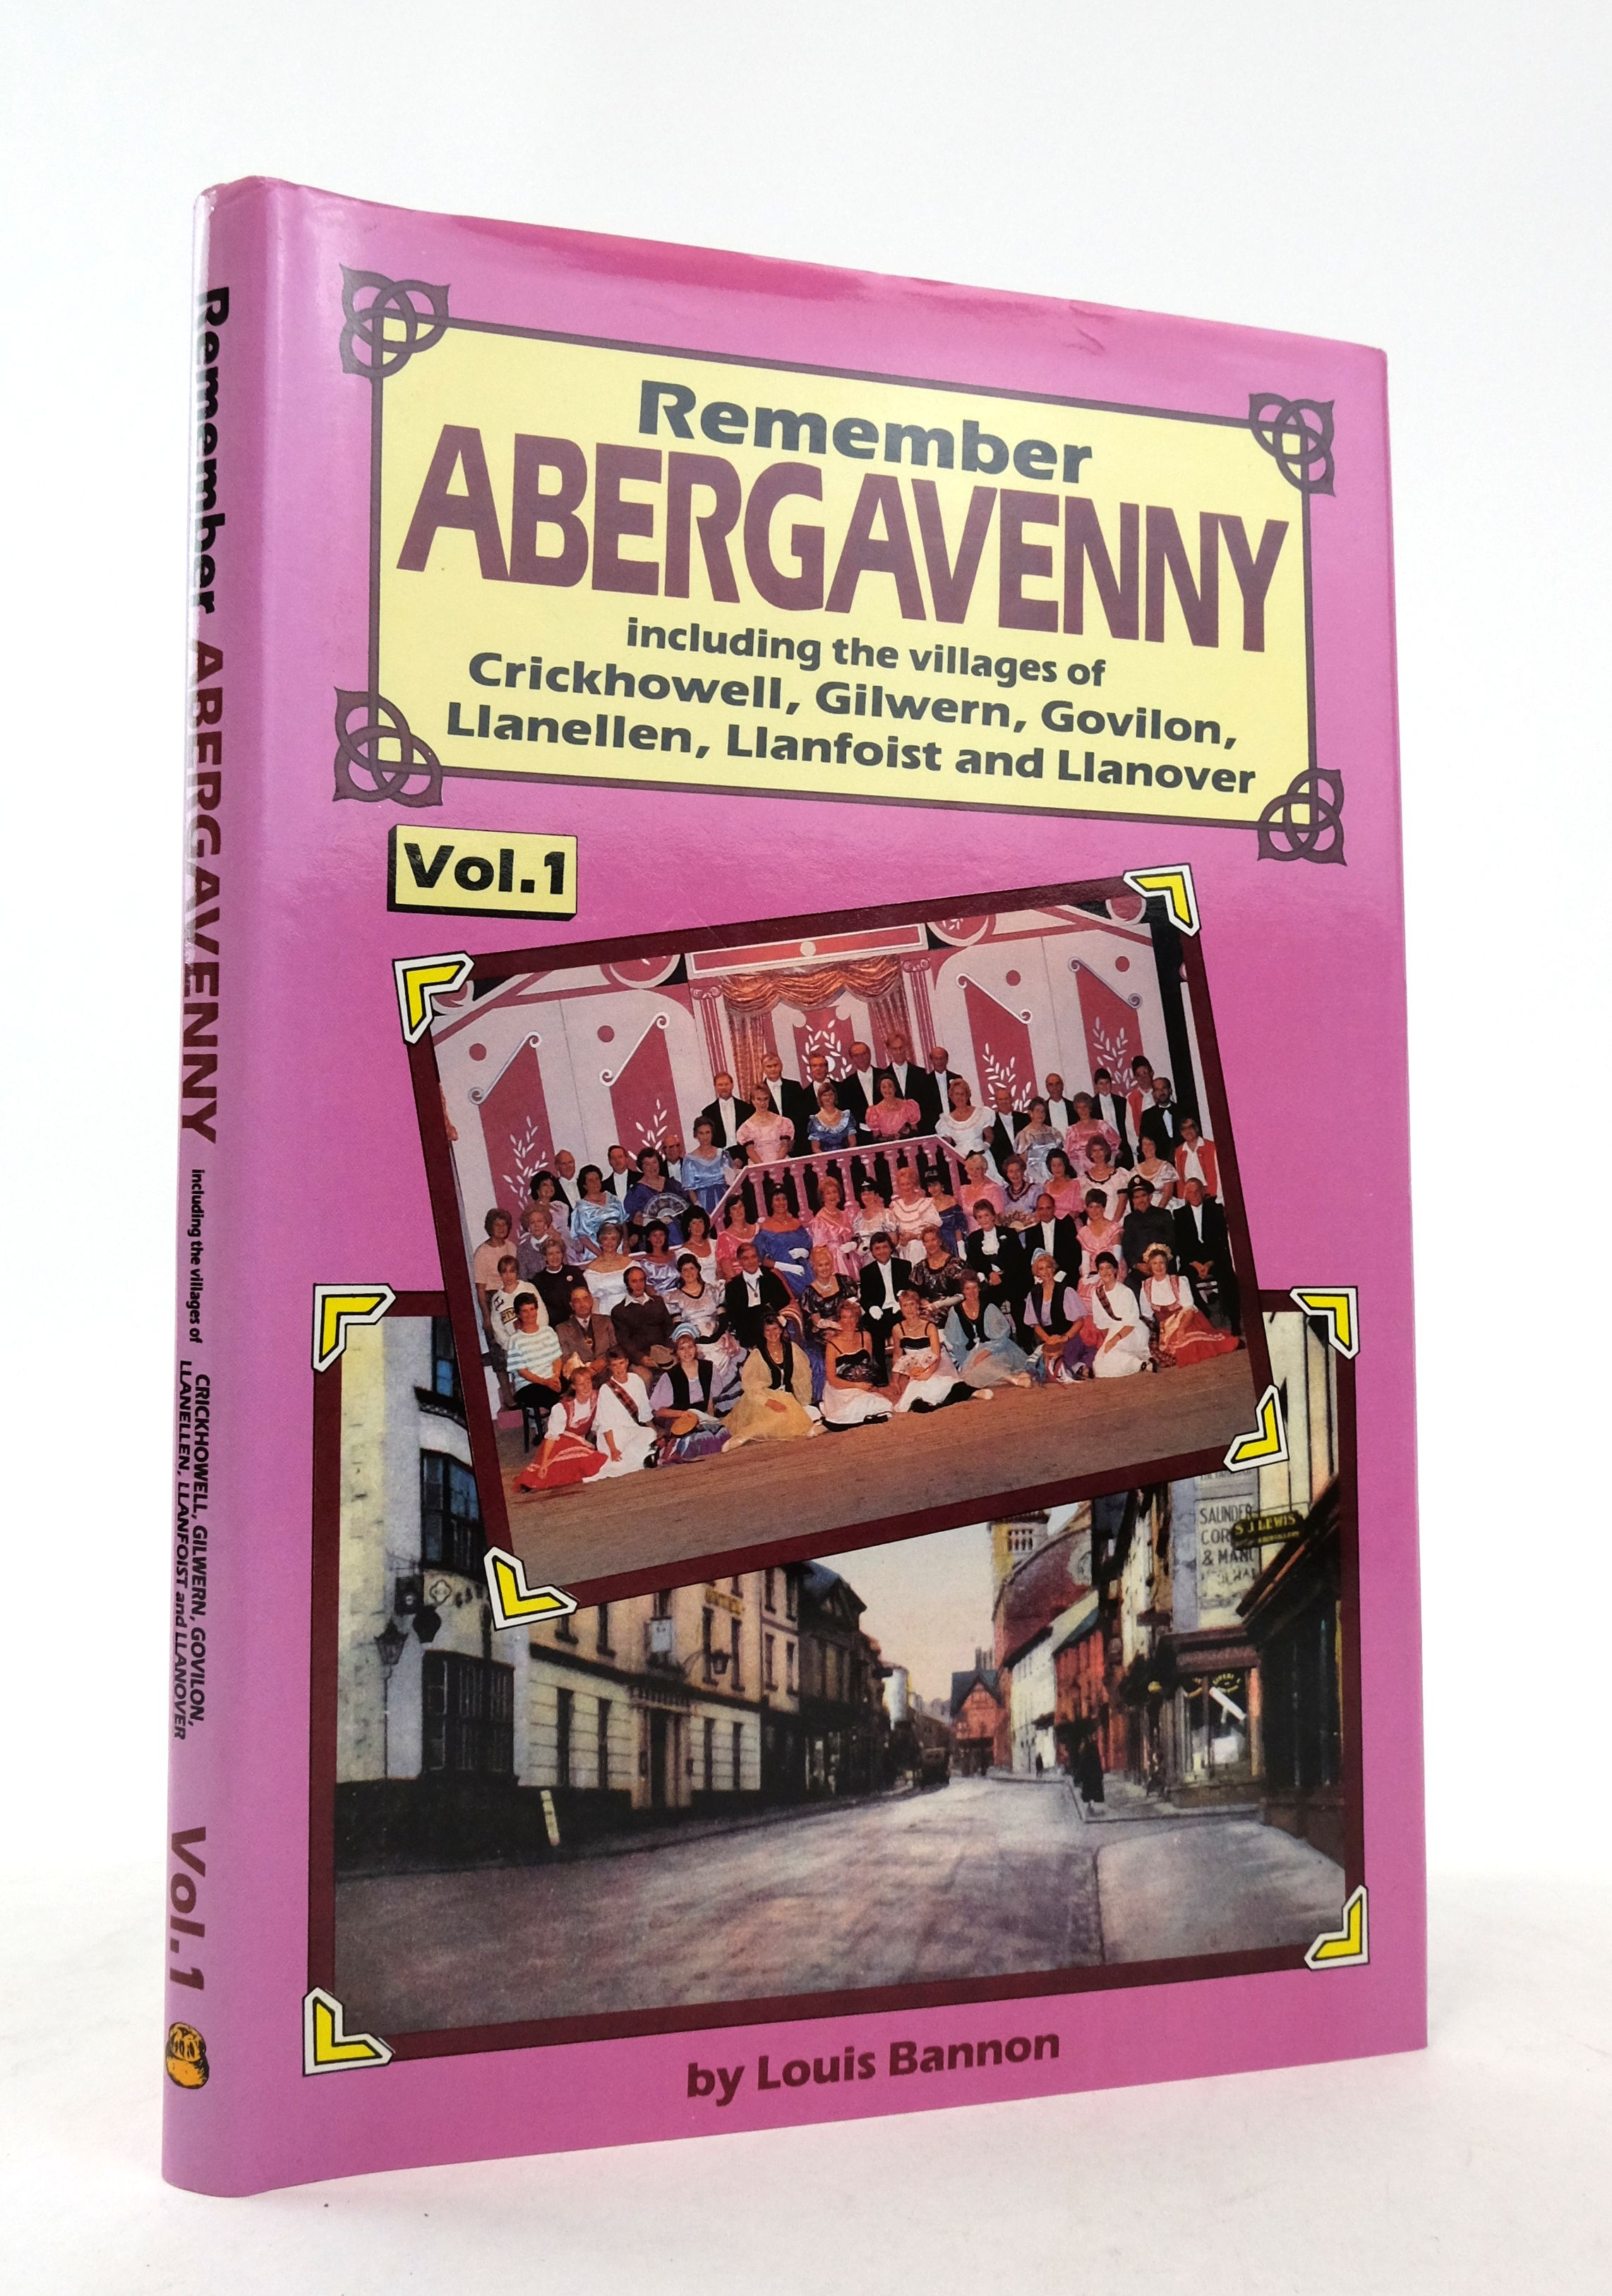 Photo of REMEMBER ABERGAVENNY VOLUME 1 written by Bannon, Louis published by Old Bakehouse Publications (STOCK CODE: 1822460)  for sale by Stella & Rose's Books